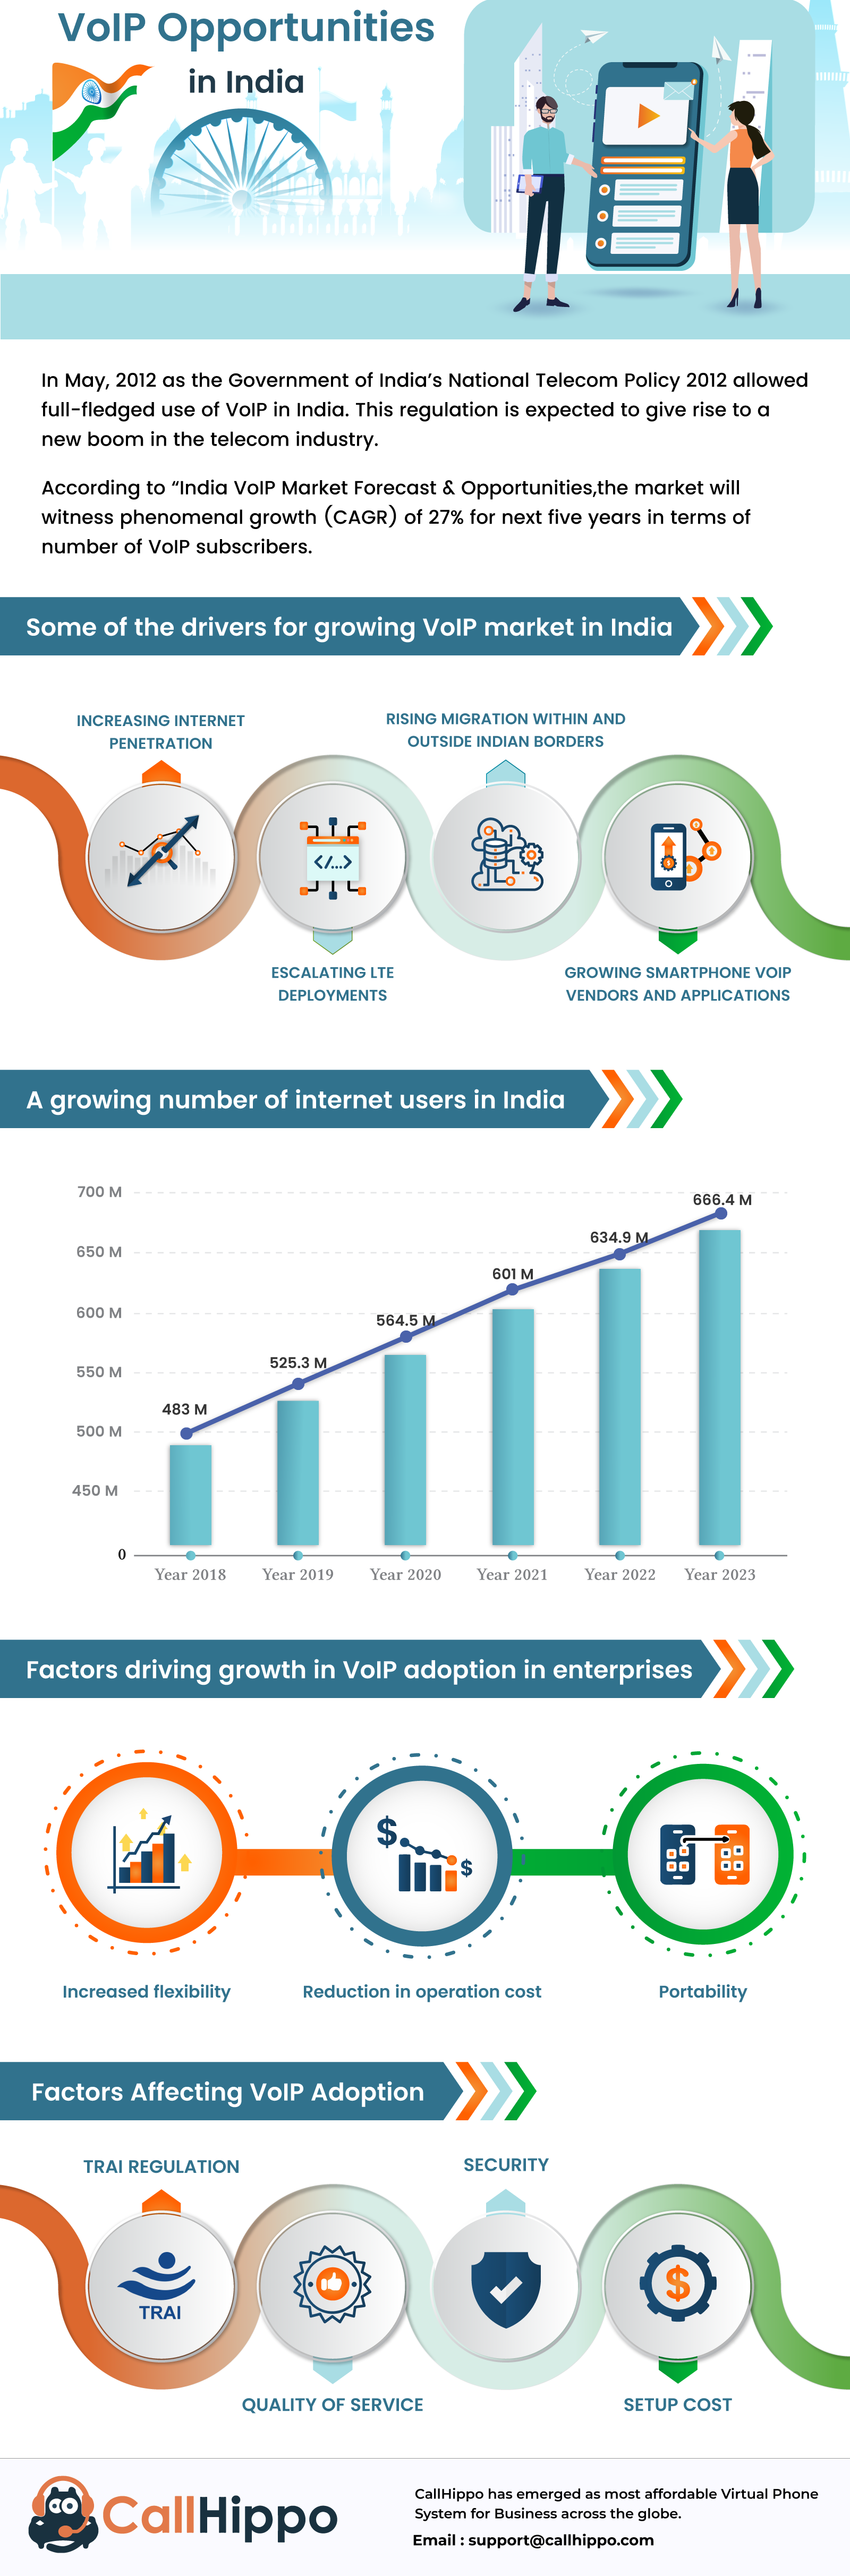 VoIP-Opportunities-in-India